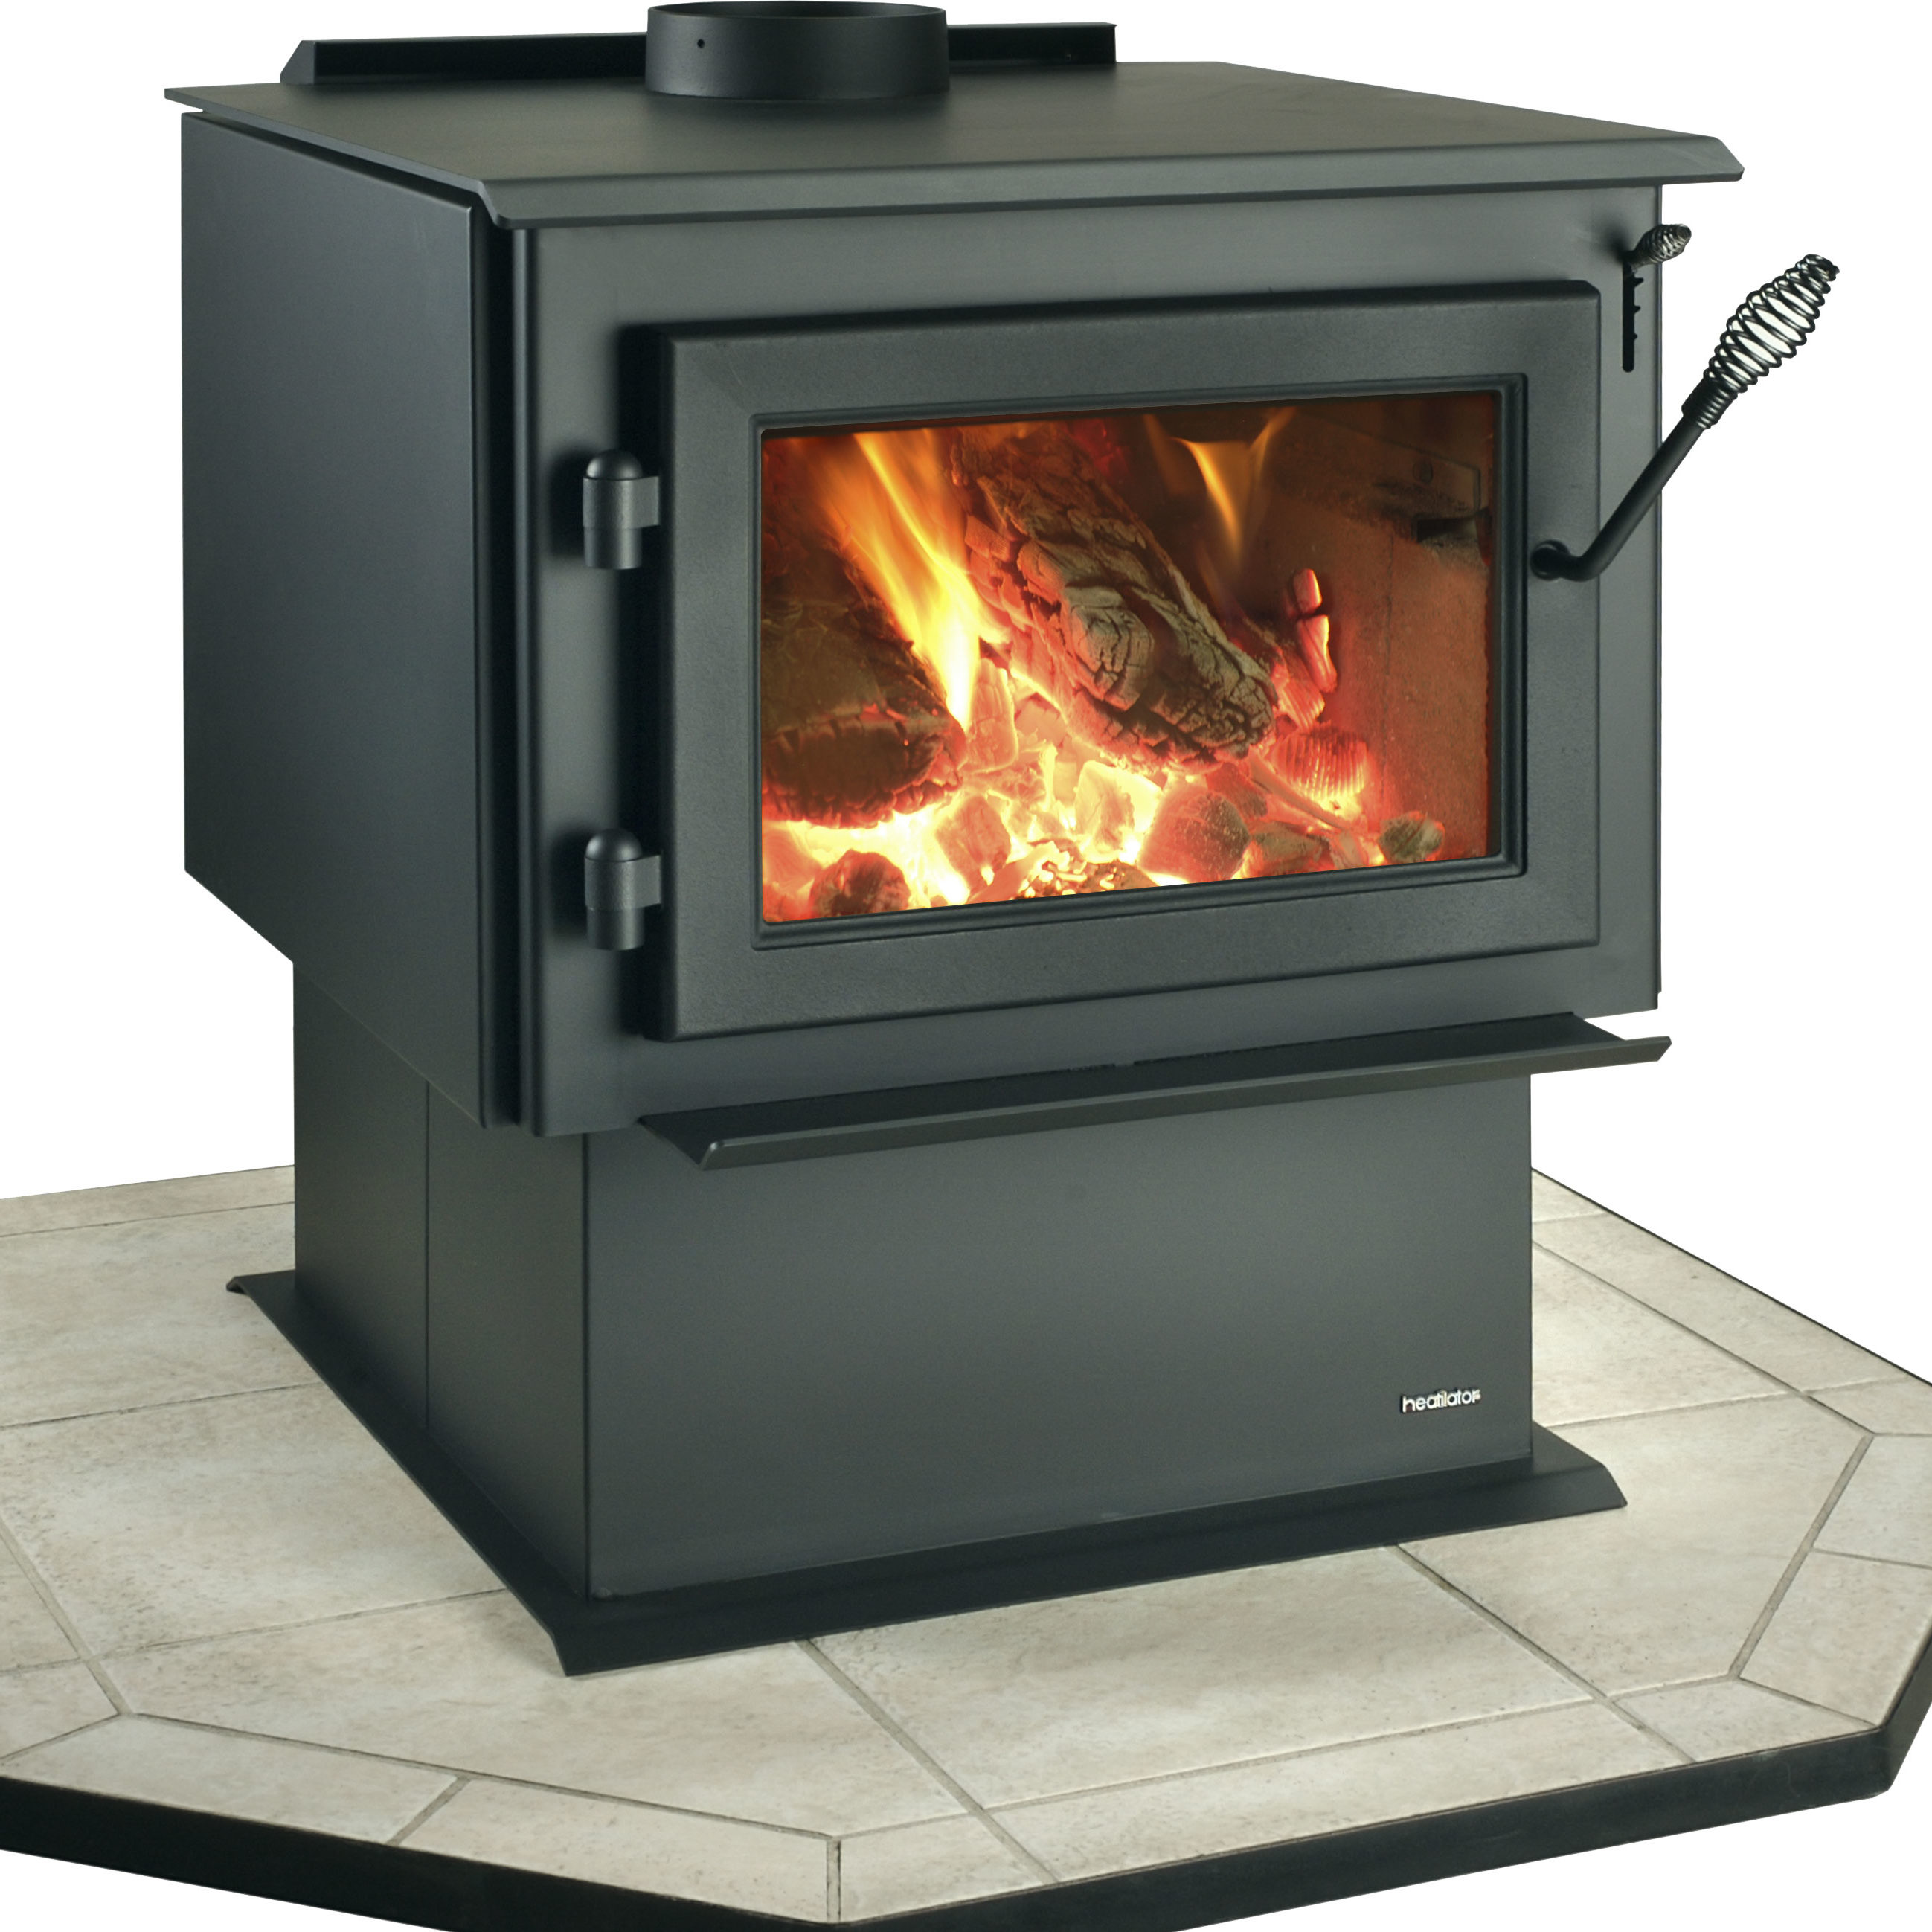 WS18 - traditional wood stove